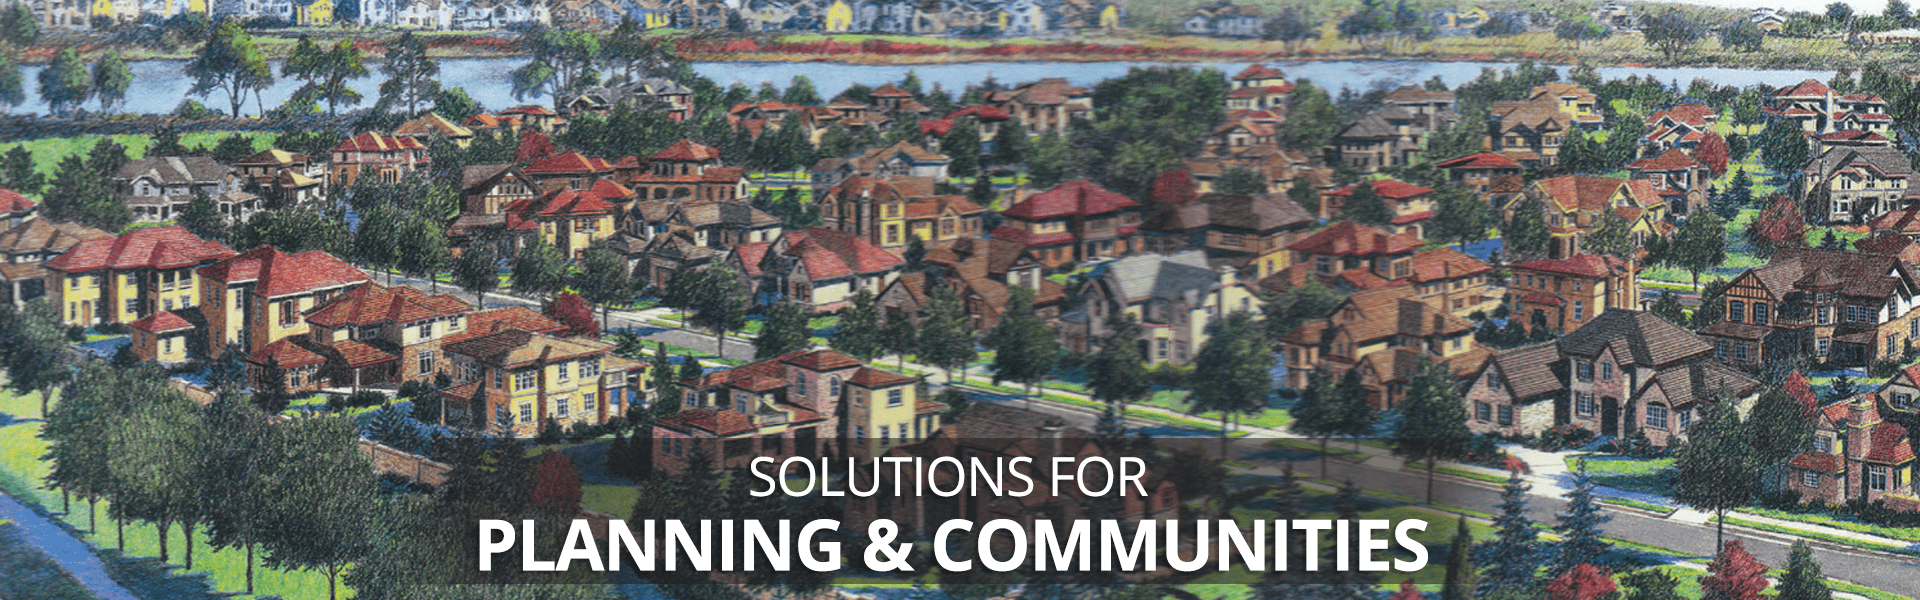 Architects that specialize in Planning & Communities in Colorado